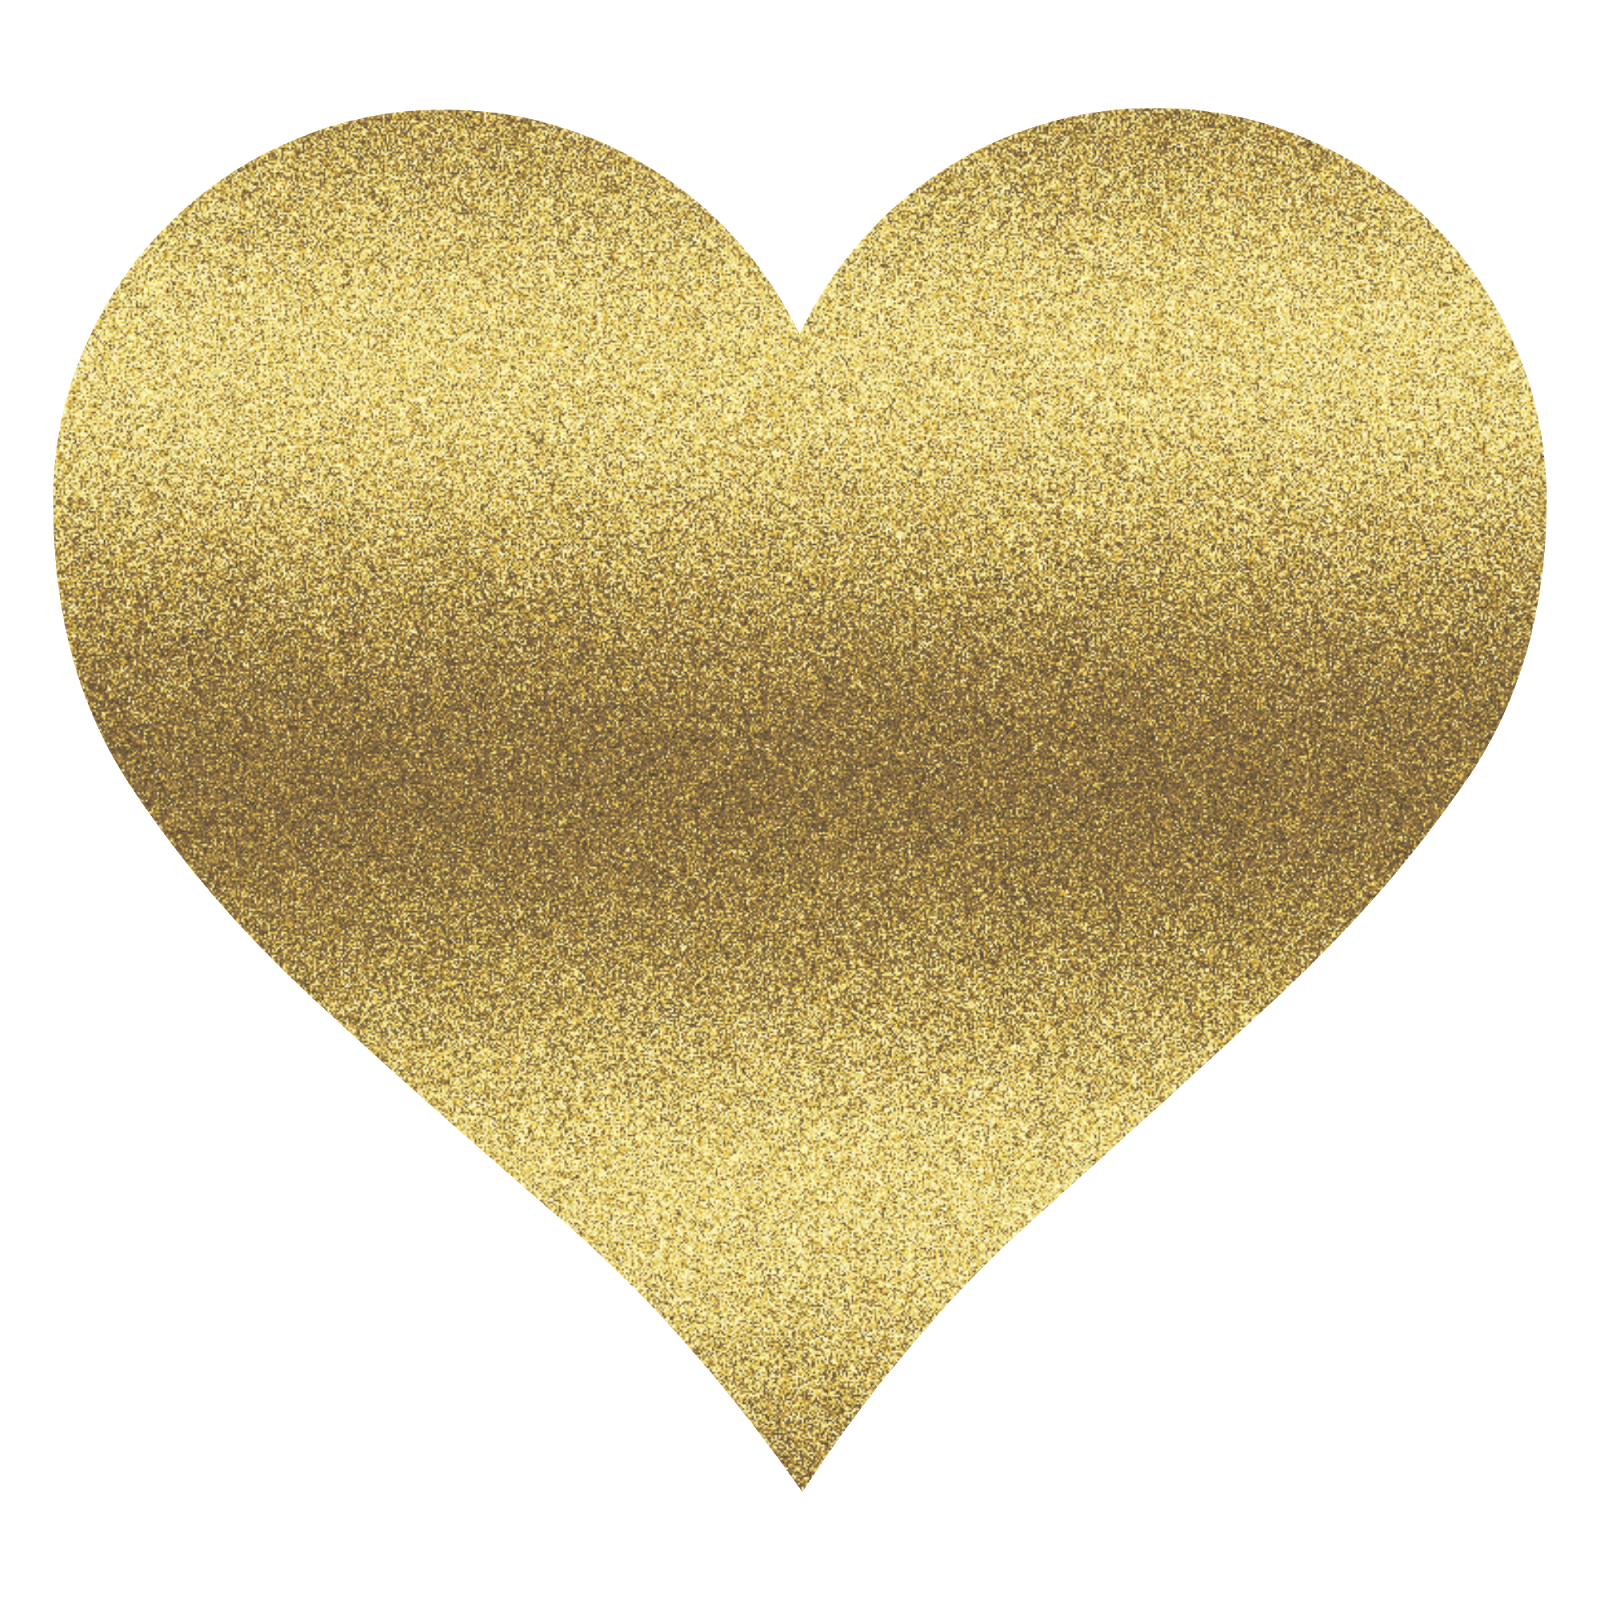 Gold glitter heart png. Transparent images clipart